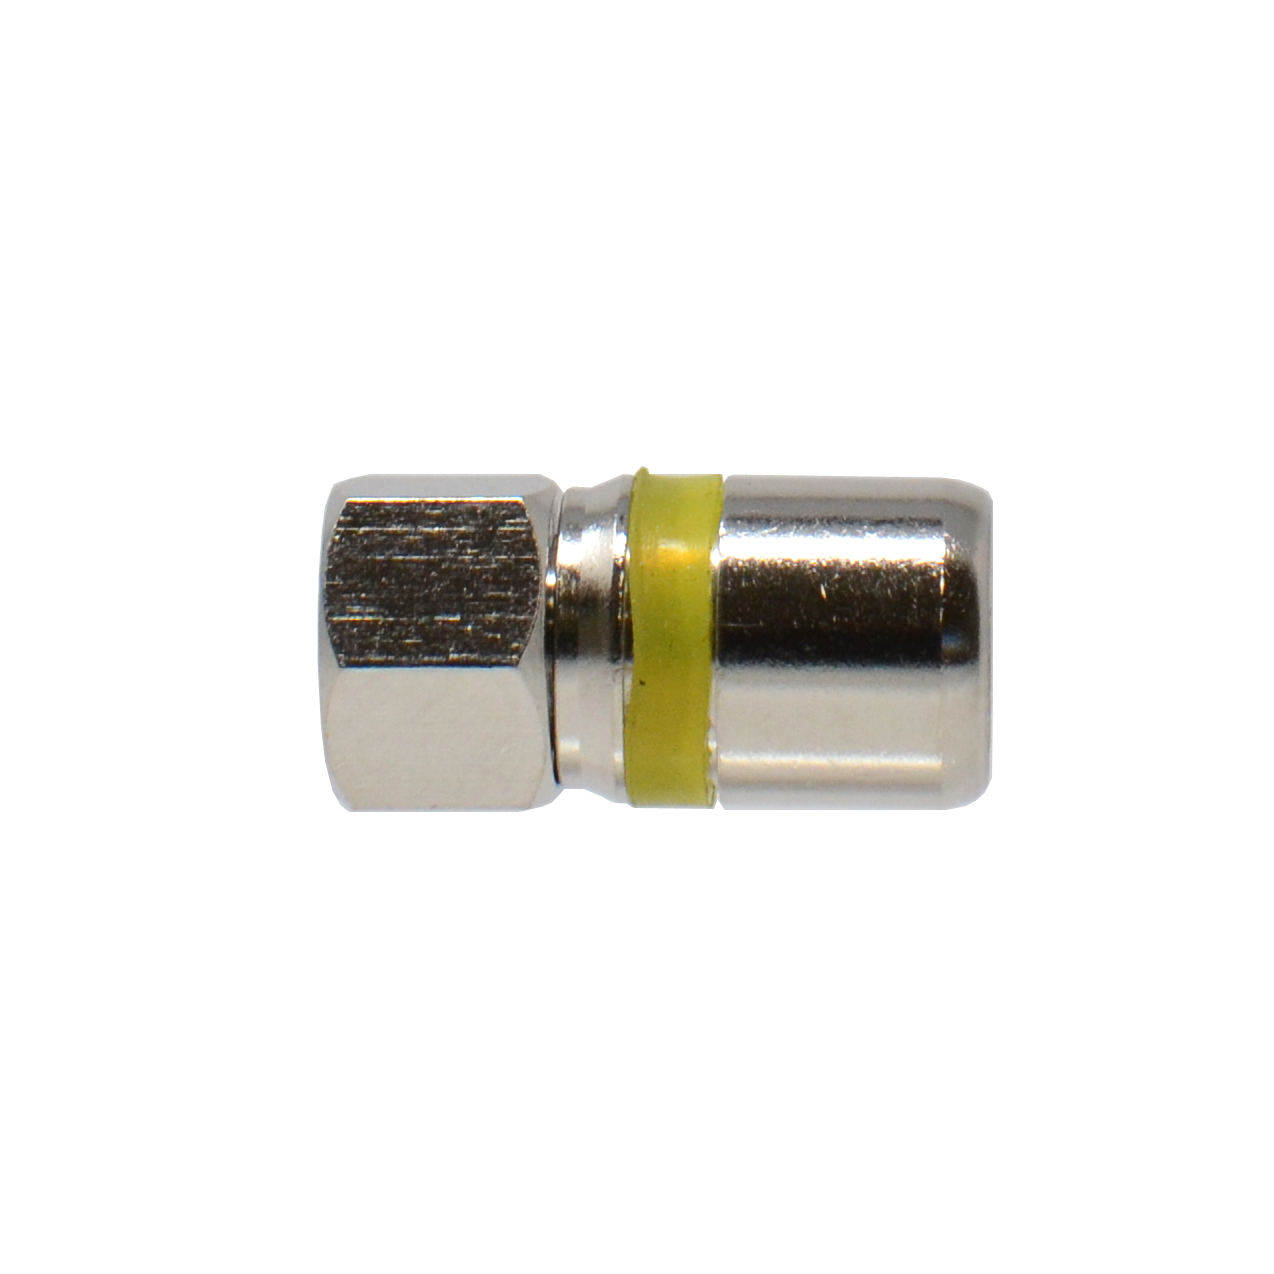 Universal F Type RG6 Coax Coaxial Adapter Compression Connector Fitting with Seal Yellow O Ring 5Pack